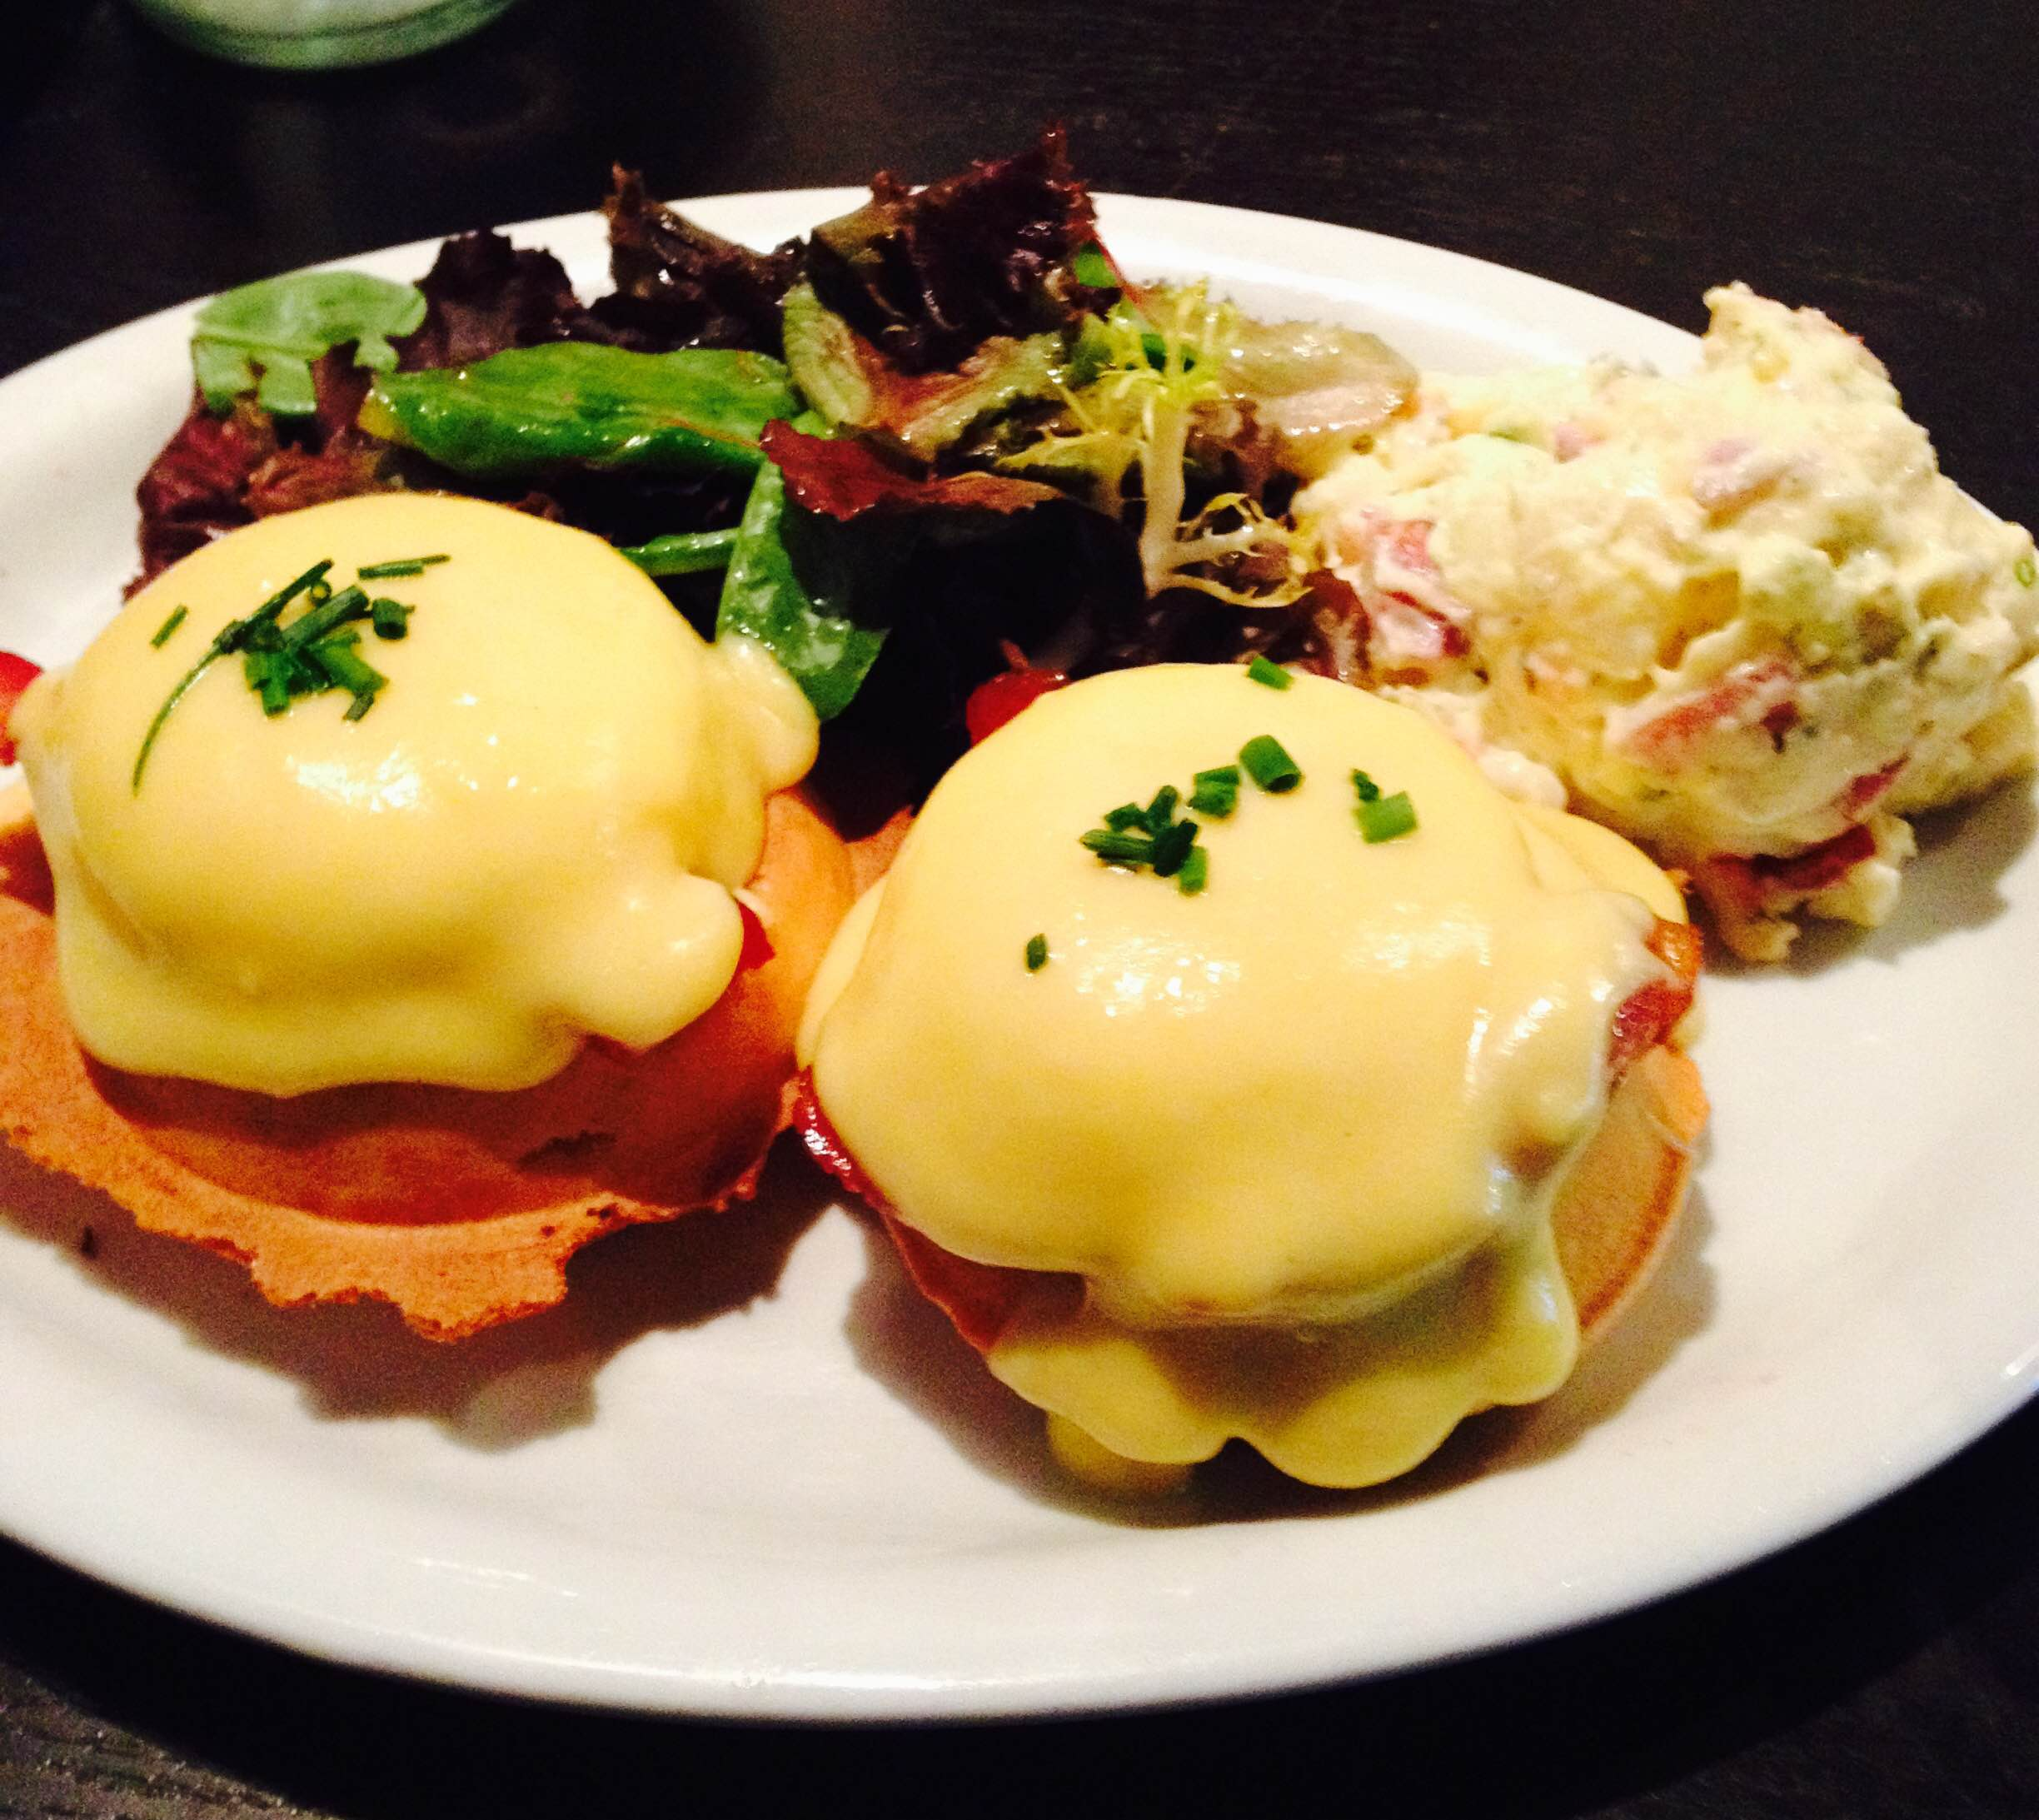 Picture of eggs benny breakfast platter.